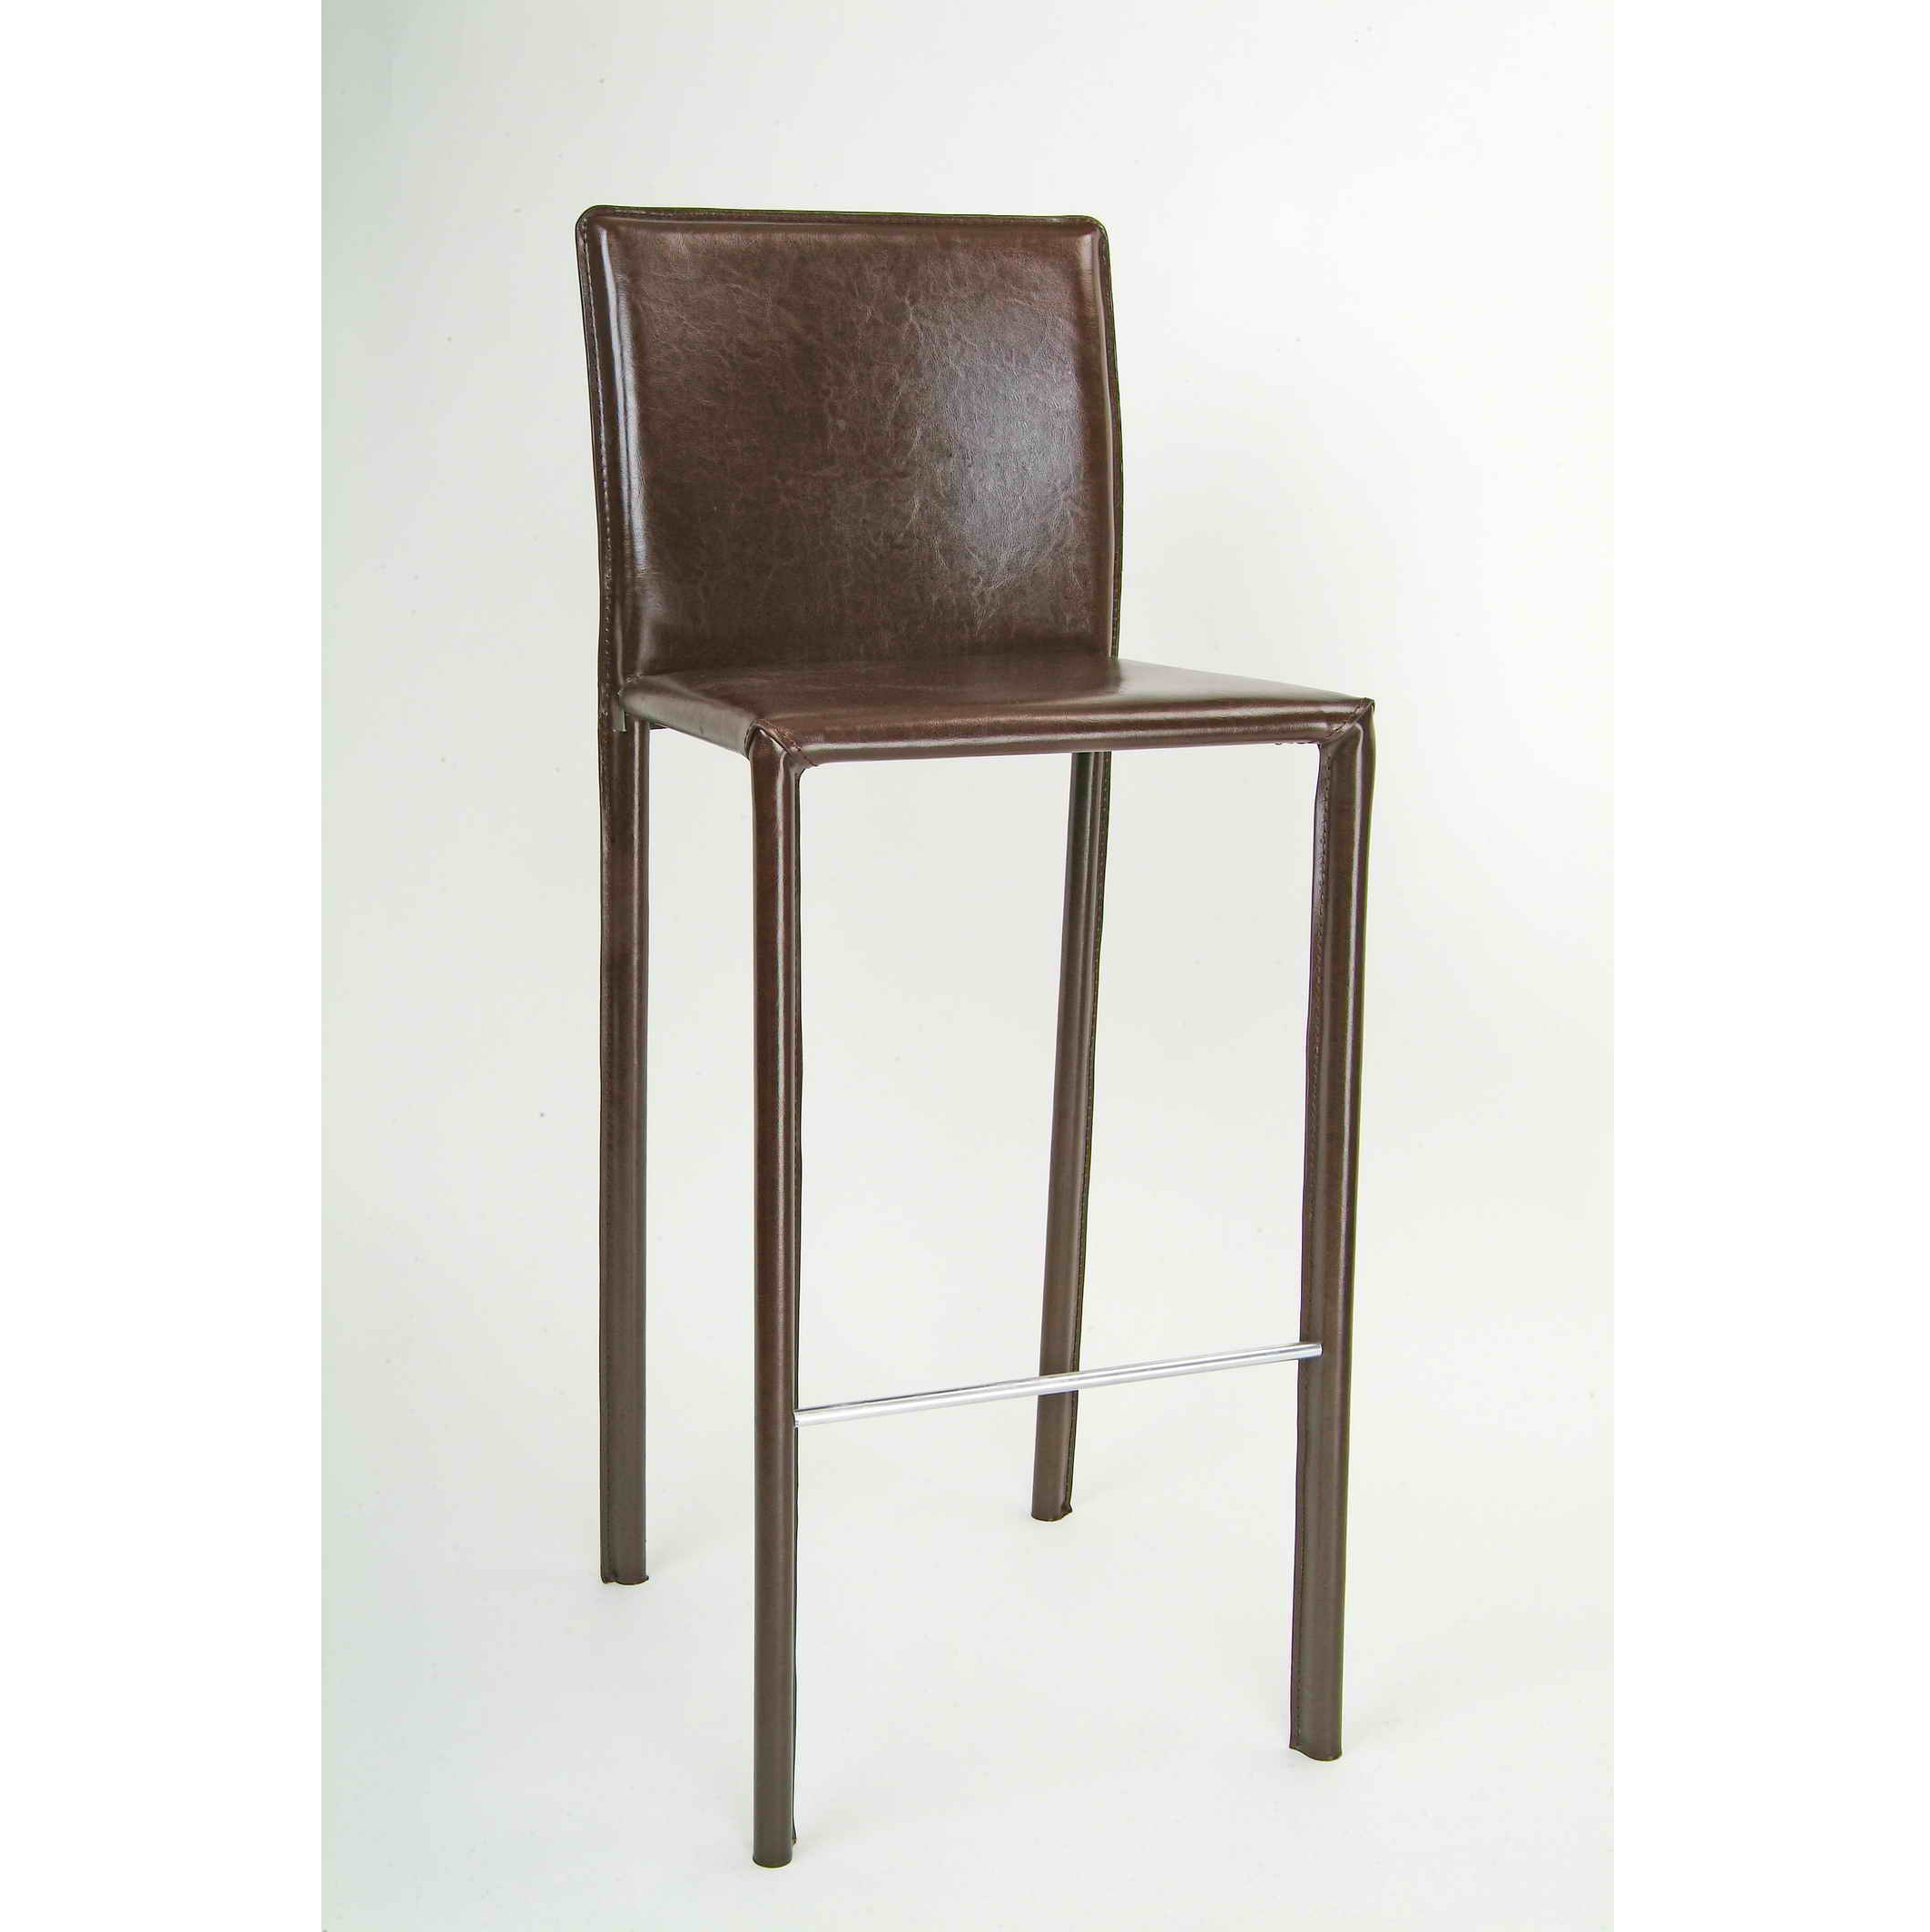 Modern Commercial Bar Furniture Home Goods Pvc Leather Stool Kitchen High Chair Recycle Back Stools